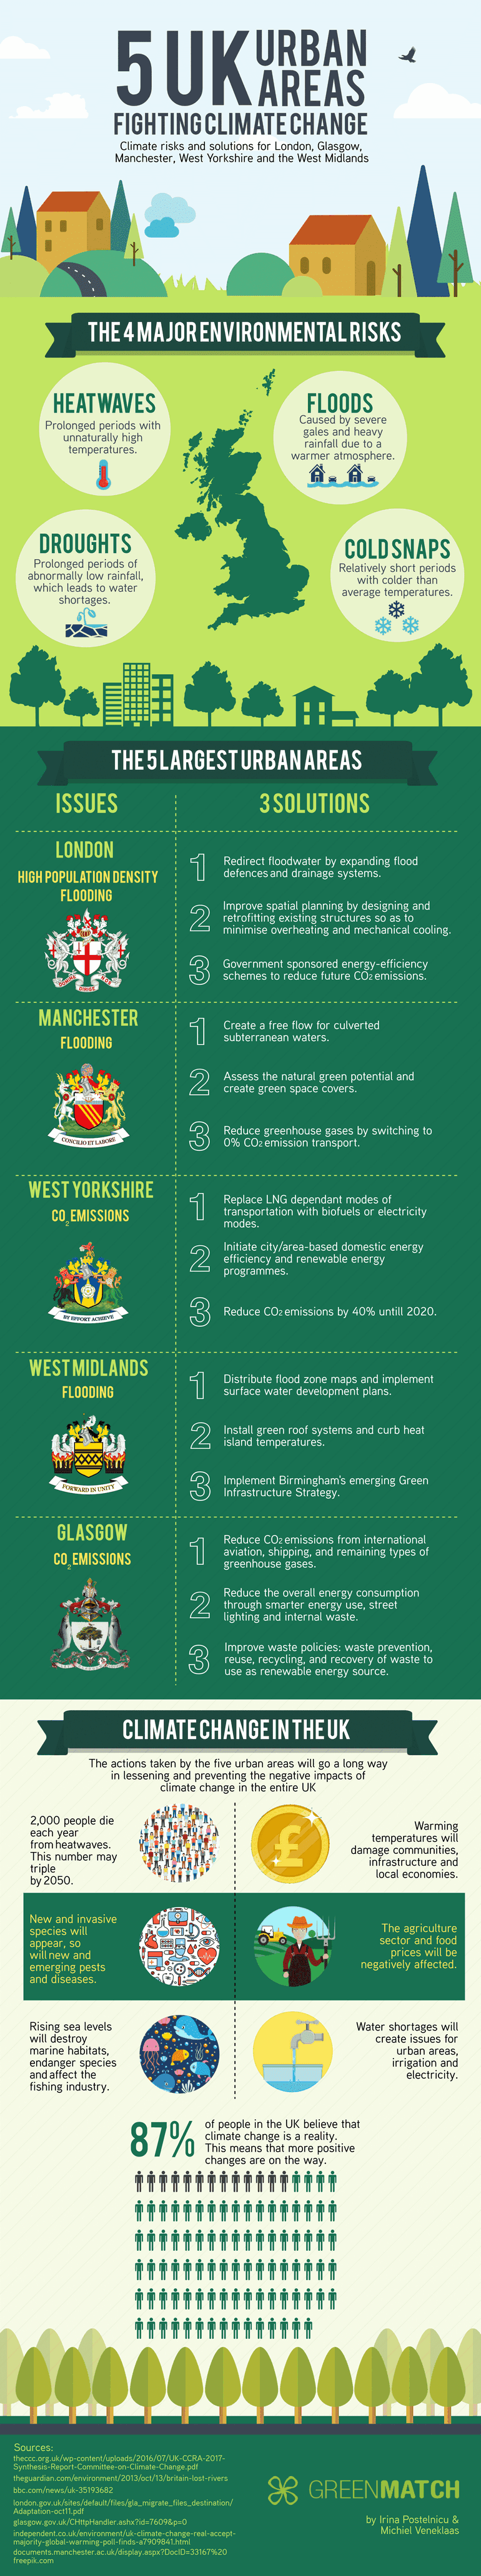 Top 5 UK Urban Areas Fighting Climate Change #Infographic